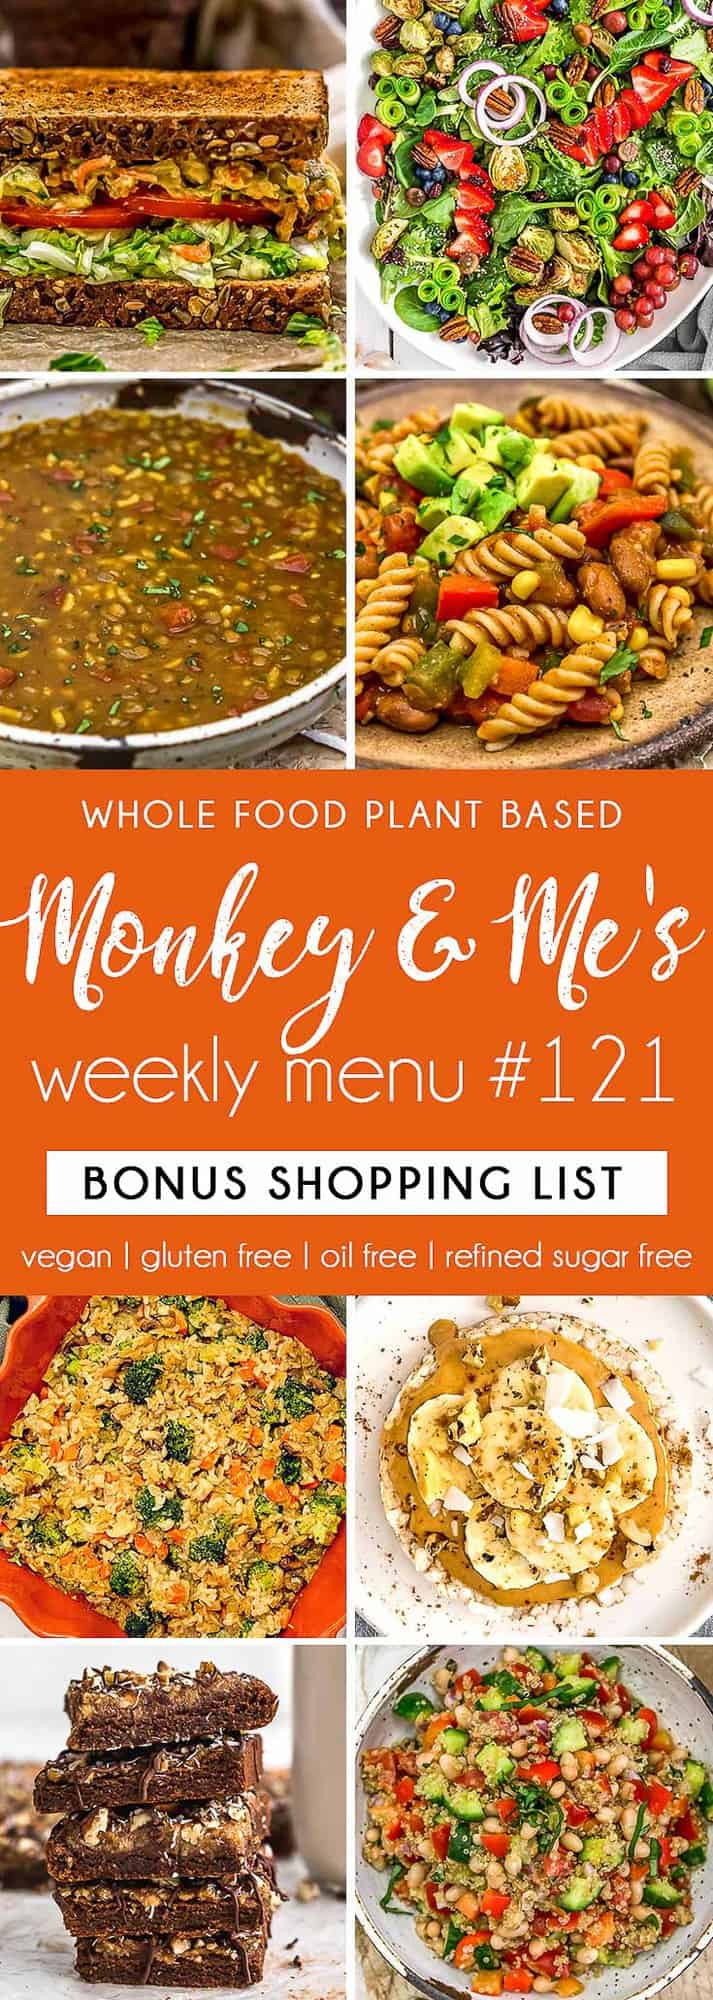 Monkey and Me's Menu 121 featuring 8 recipes